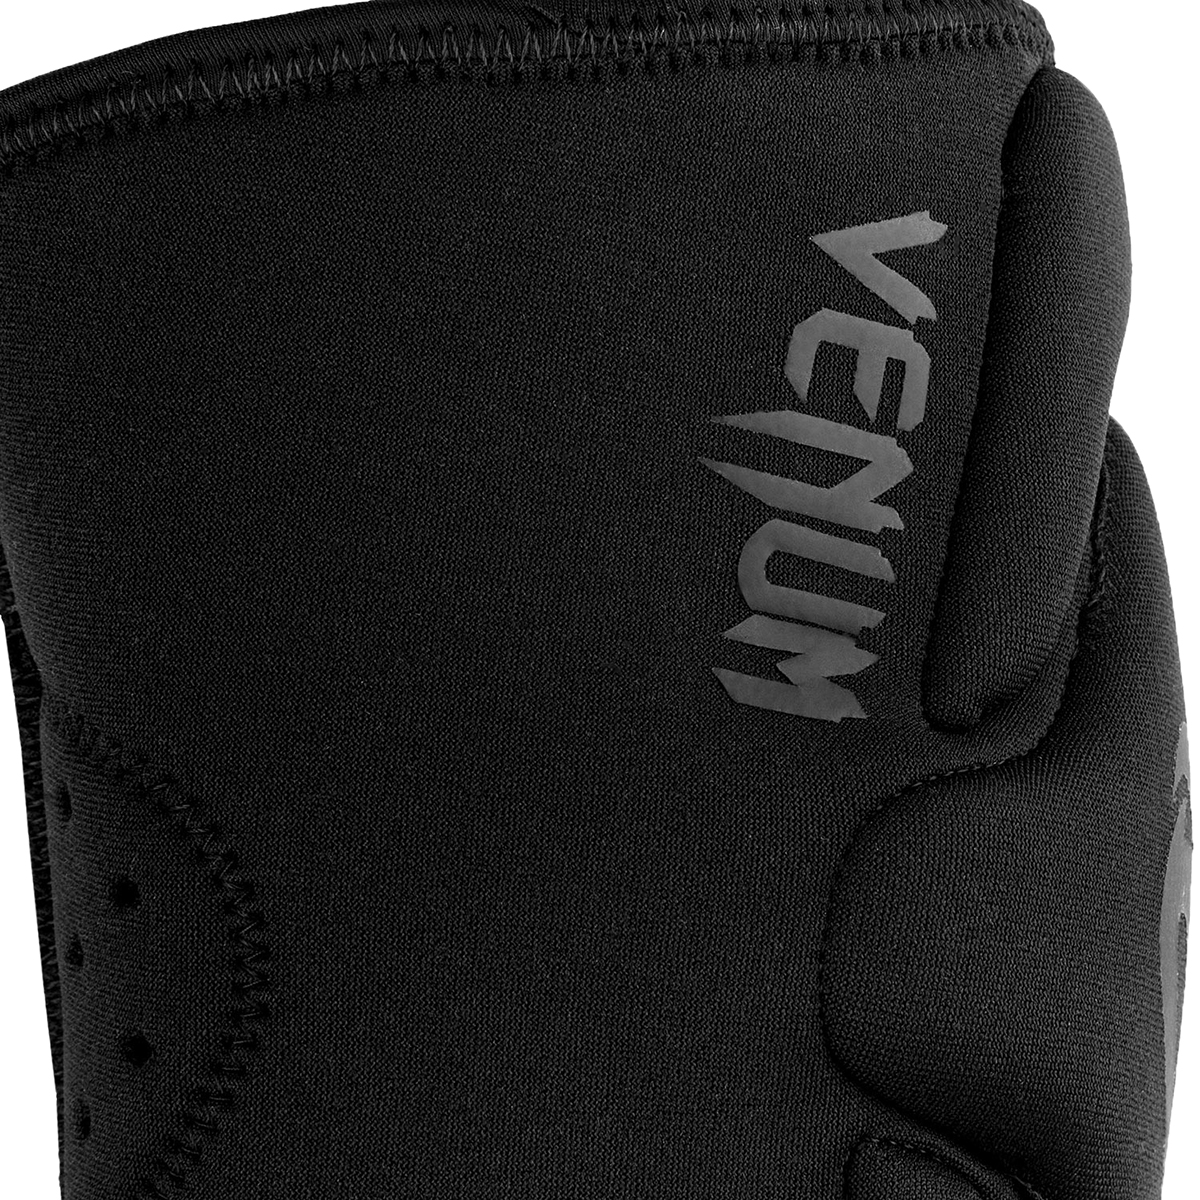 thumbnail 5 - Venum-Kontact-Gel-Shock-System-Protective-MMA-Training-Knee-Pads